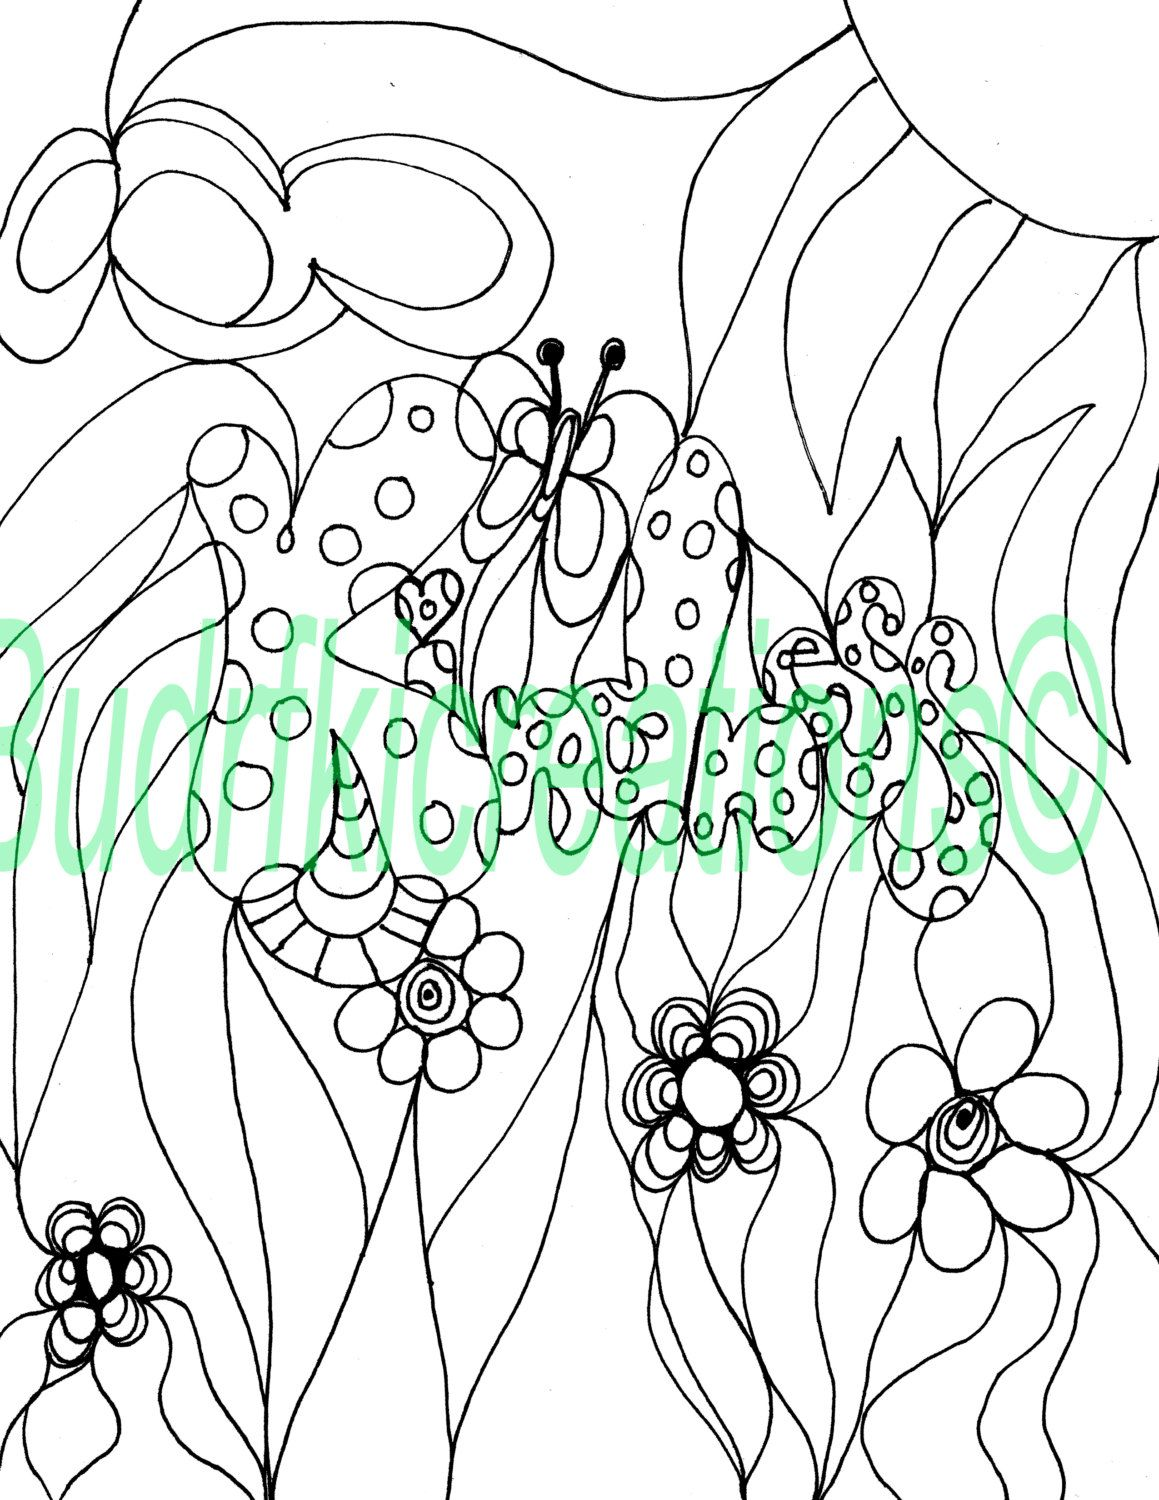 Kindness Fruits of the Spirit Adult Coloring Page Instant Digital ...